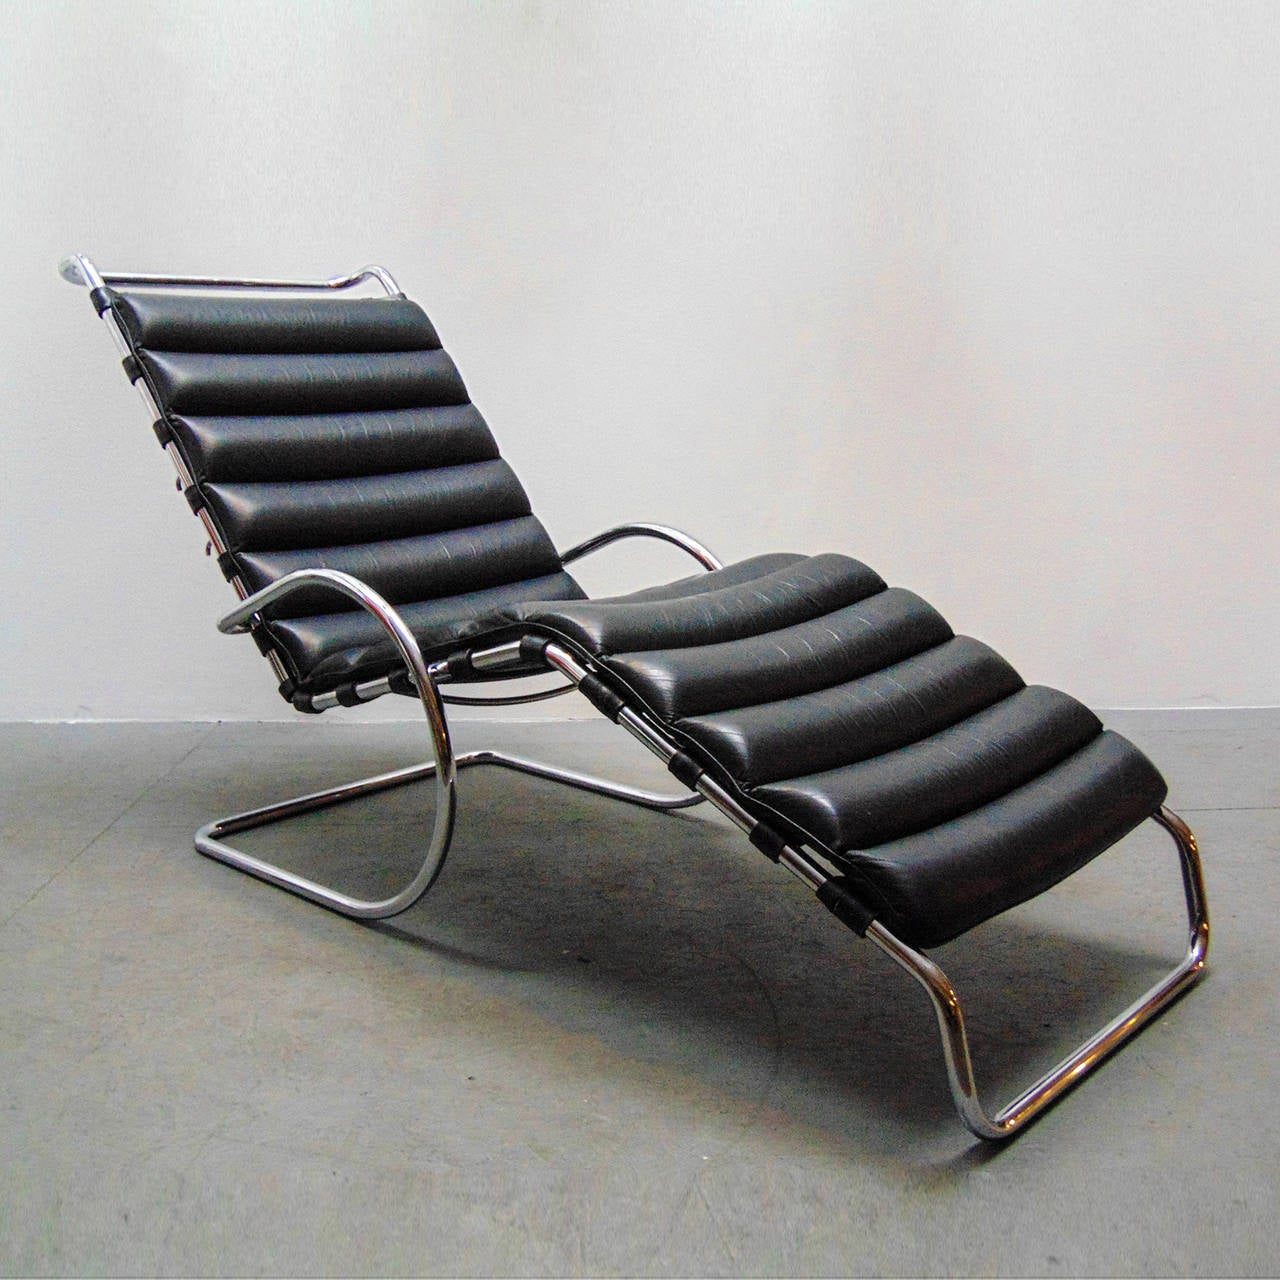 Stunning Mies Van Der Rohe MR Chaise Longue For Knoll International Italy,  In Tubular Steel